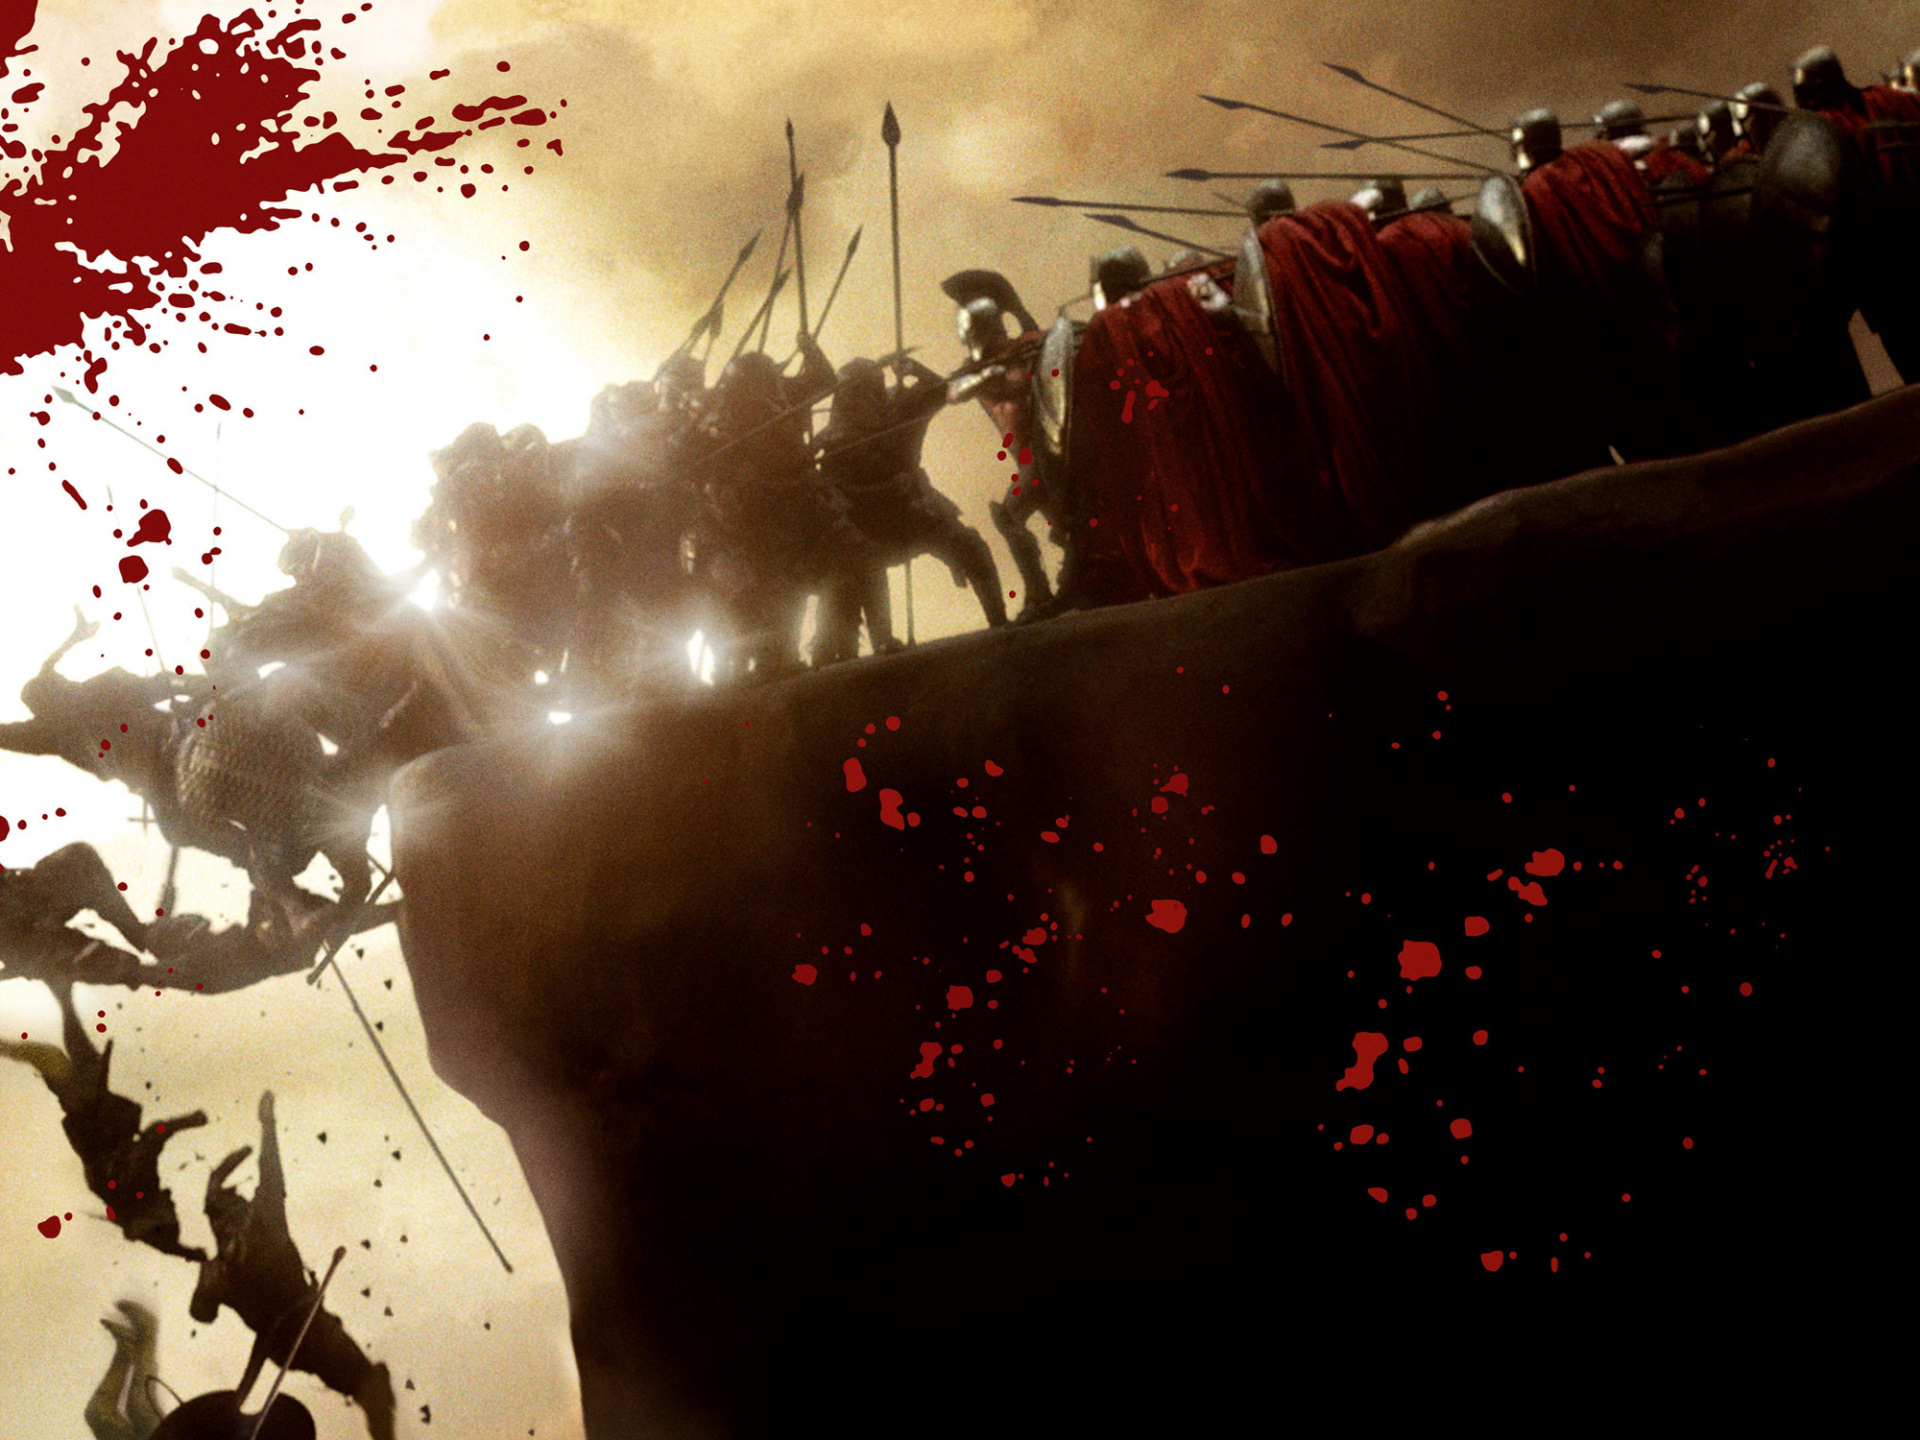 300  First Battle Scene  Full HD 1080p  Earthquake No Captain Battle Formations